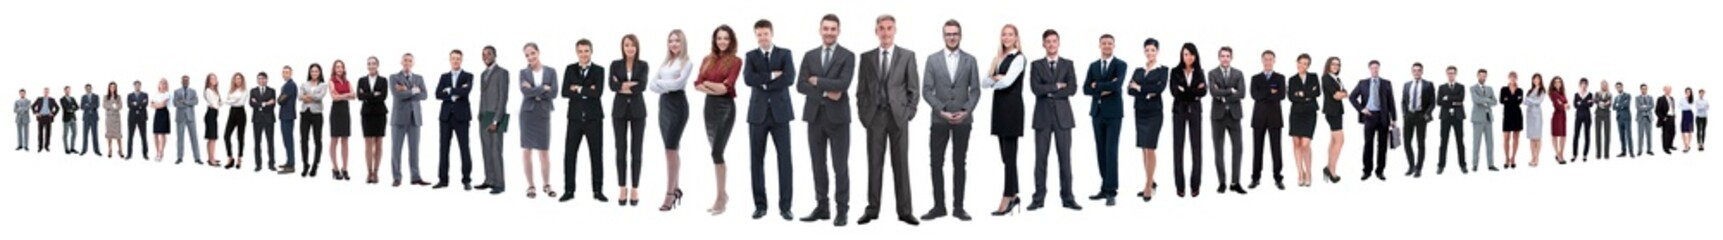 panoramic collage of a large and successful business team Fototapete